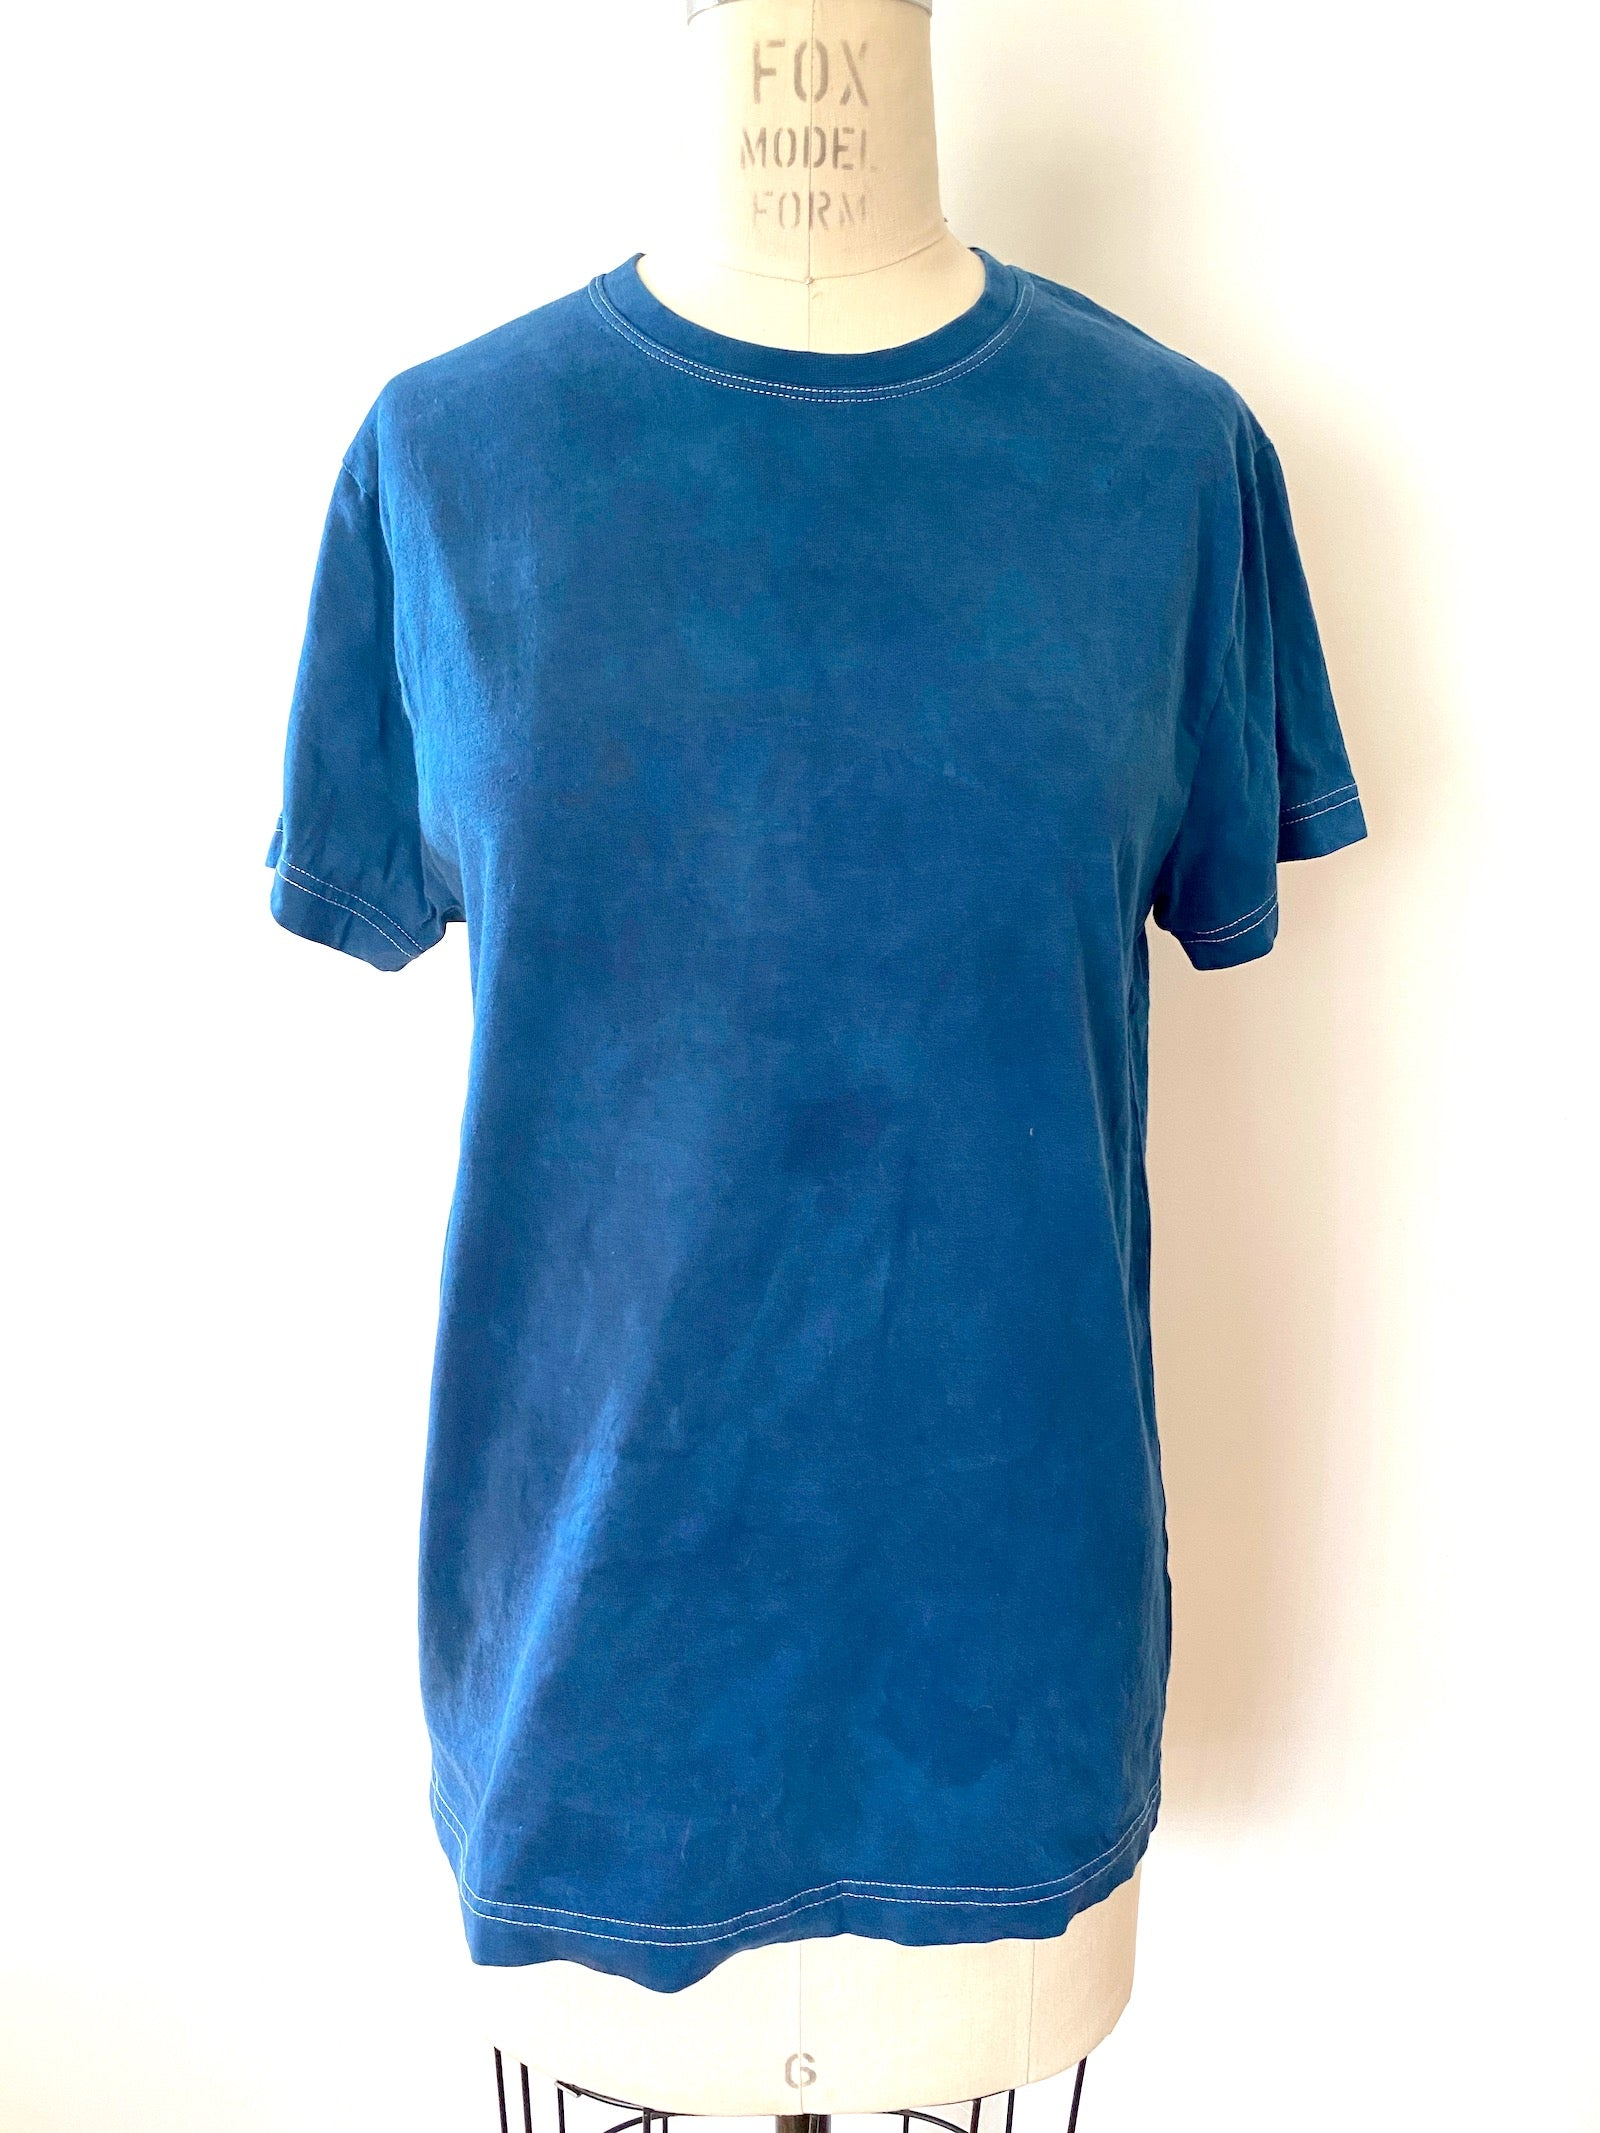 T shirt | For Men & Women | California Grown Cotton | Ultra Soft | Blue Hand Dyed Solid - Modern Shibori